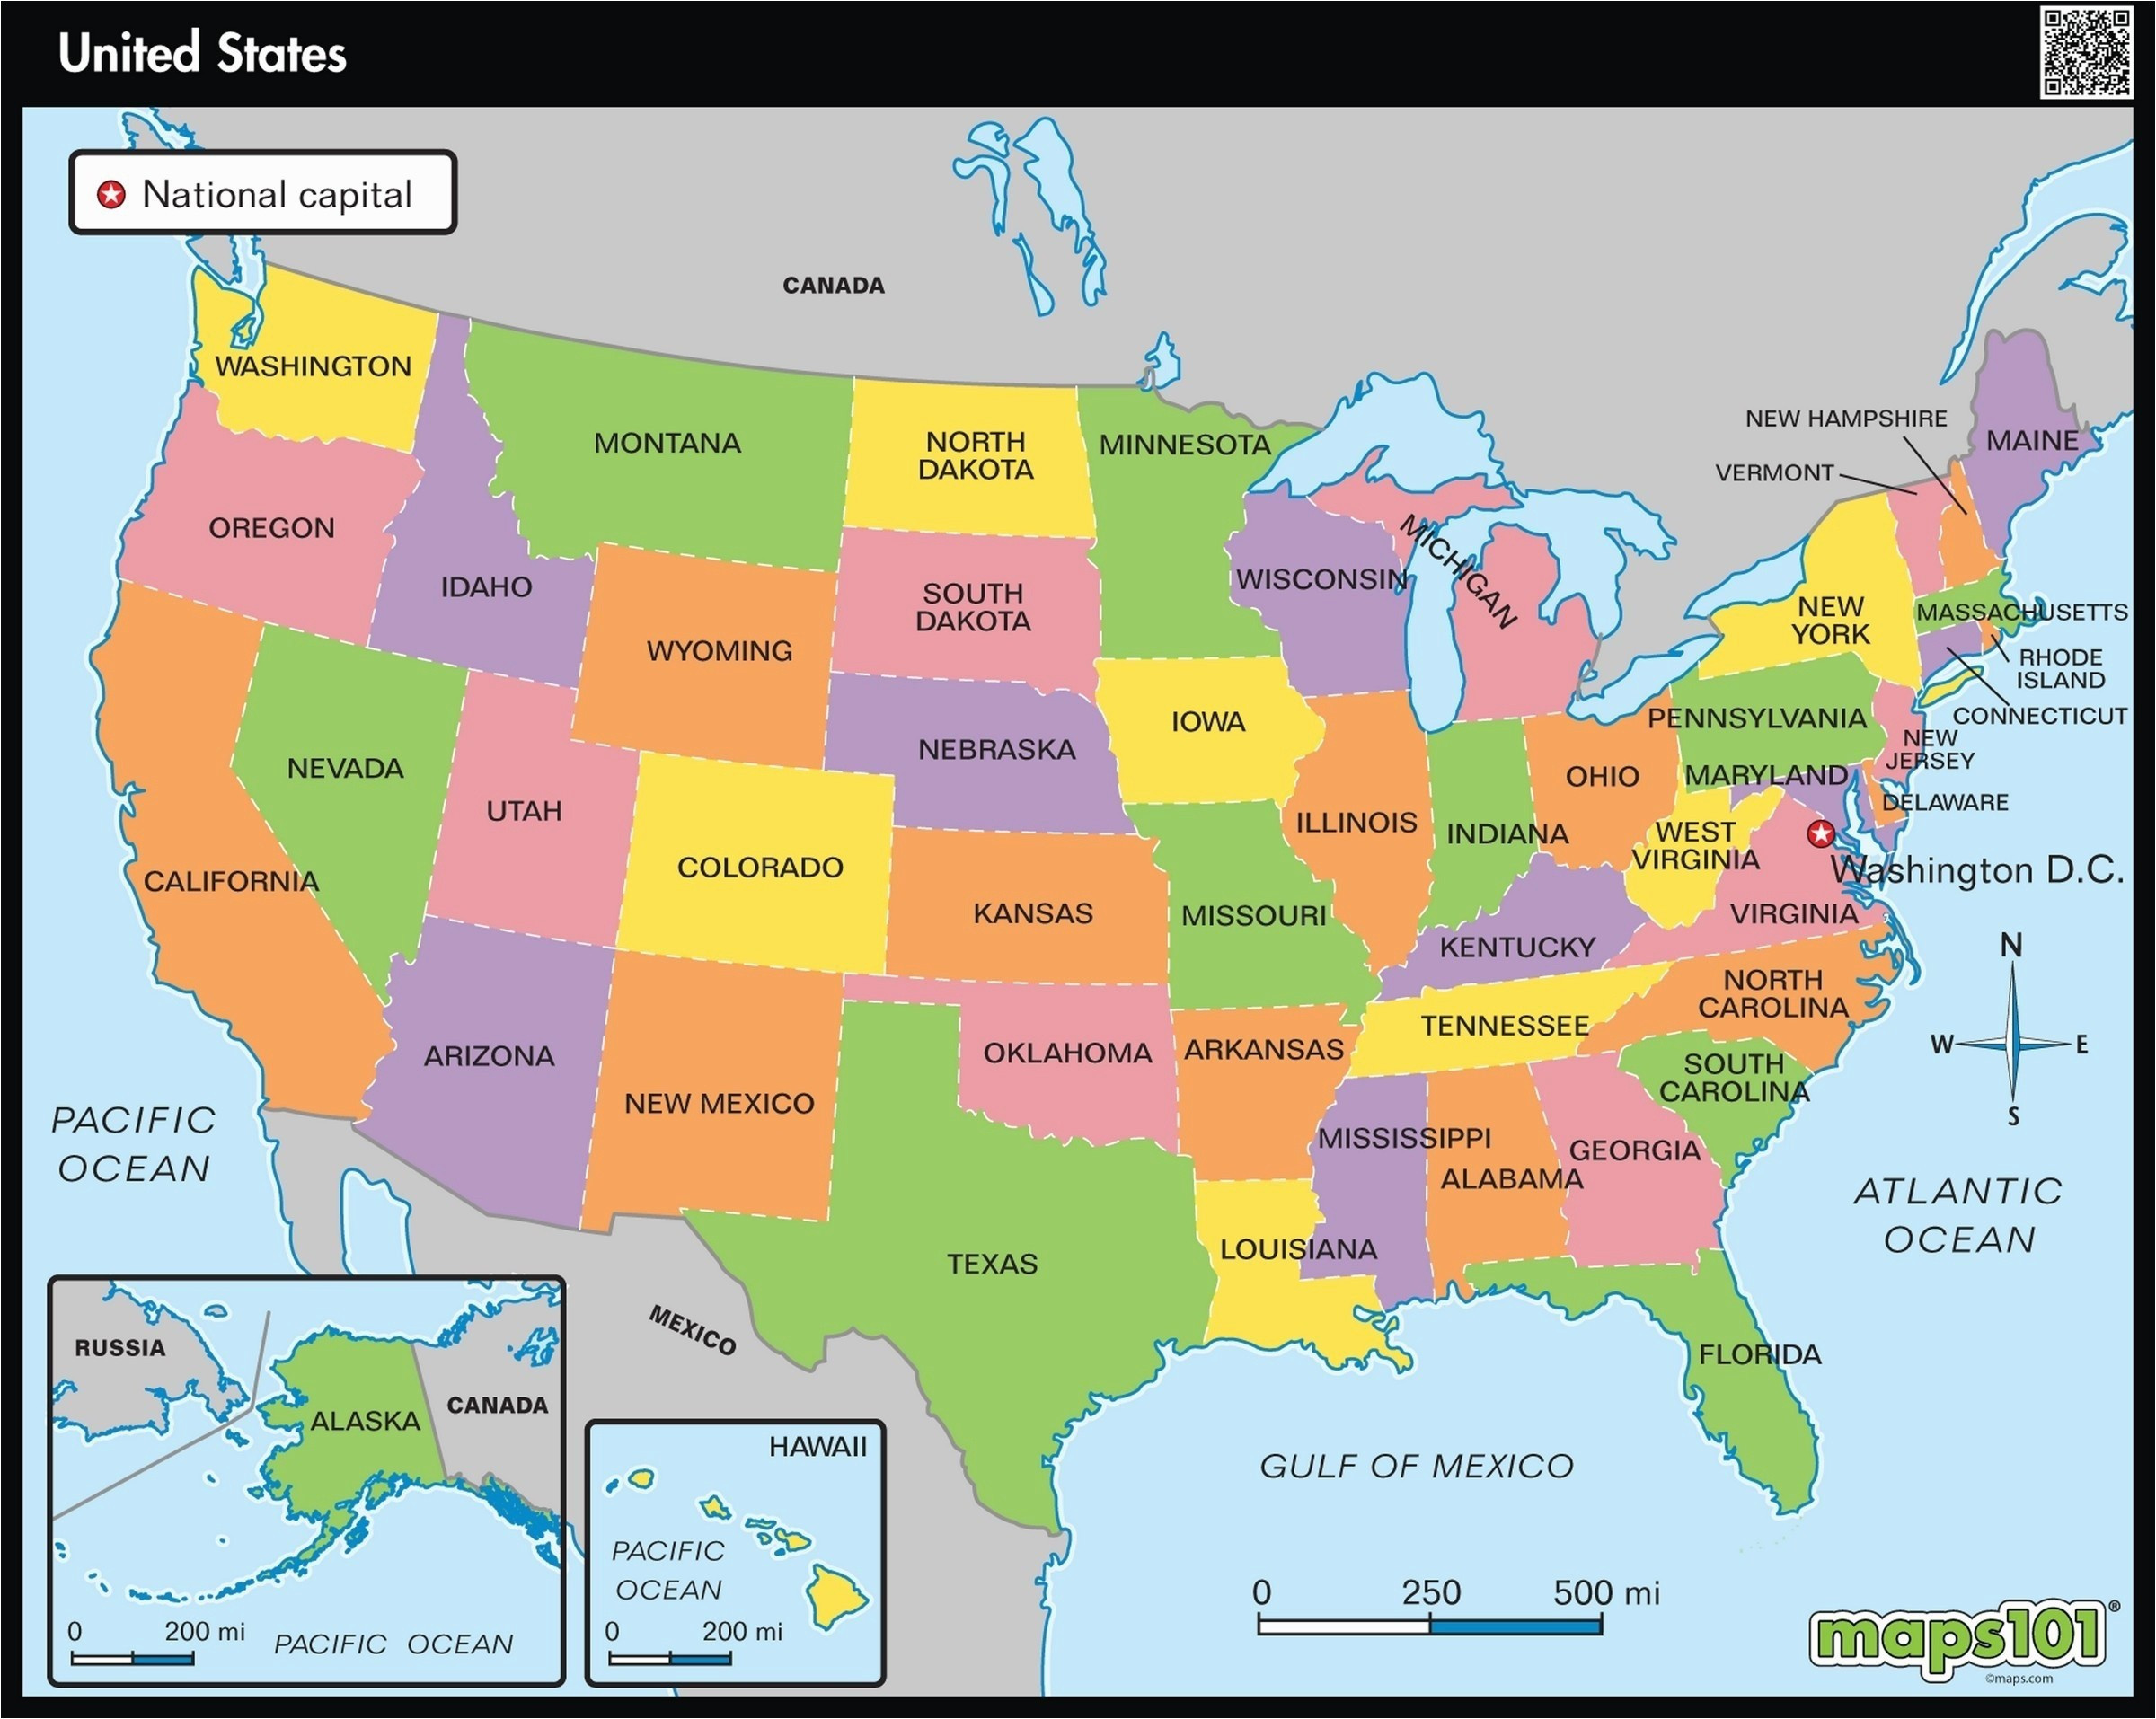 United States Regions Map Printable Inspirationa United States Map